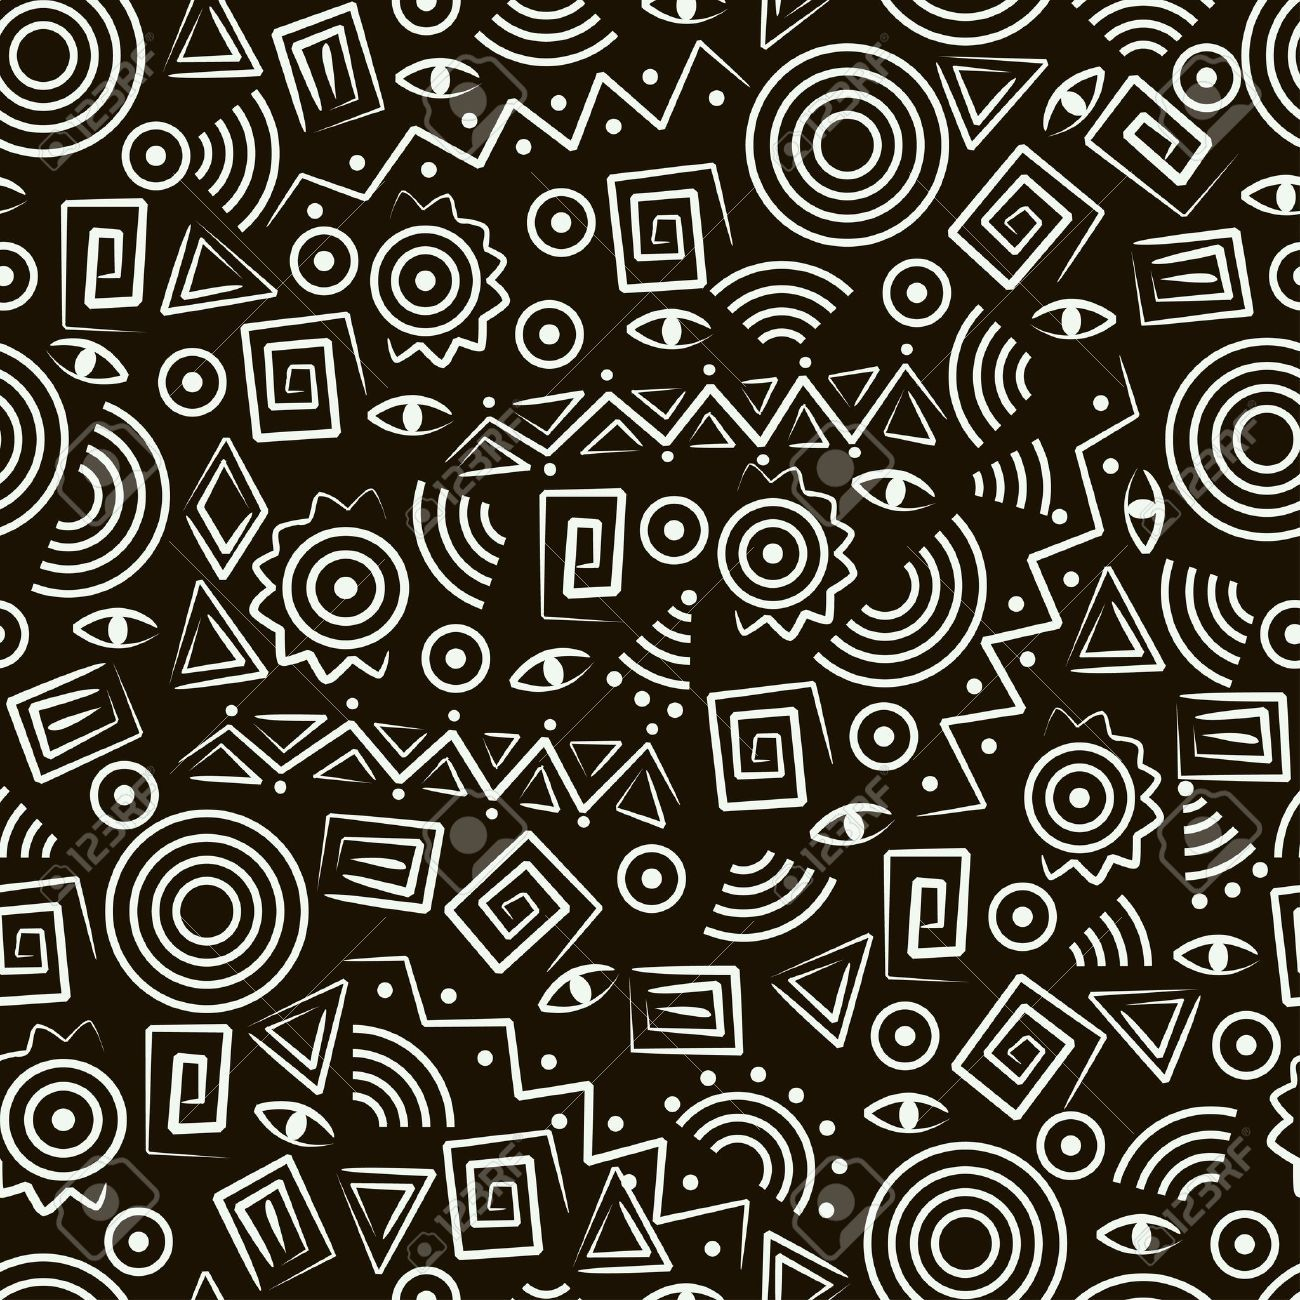 9473012-Tribal-art-Seamless-pattern-with-abstract-figures ... - photo#25